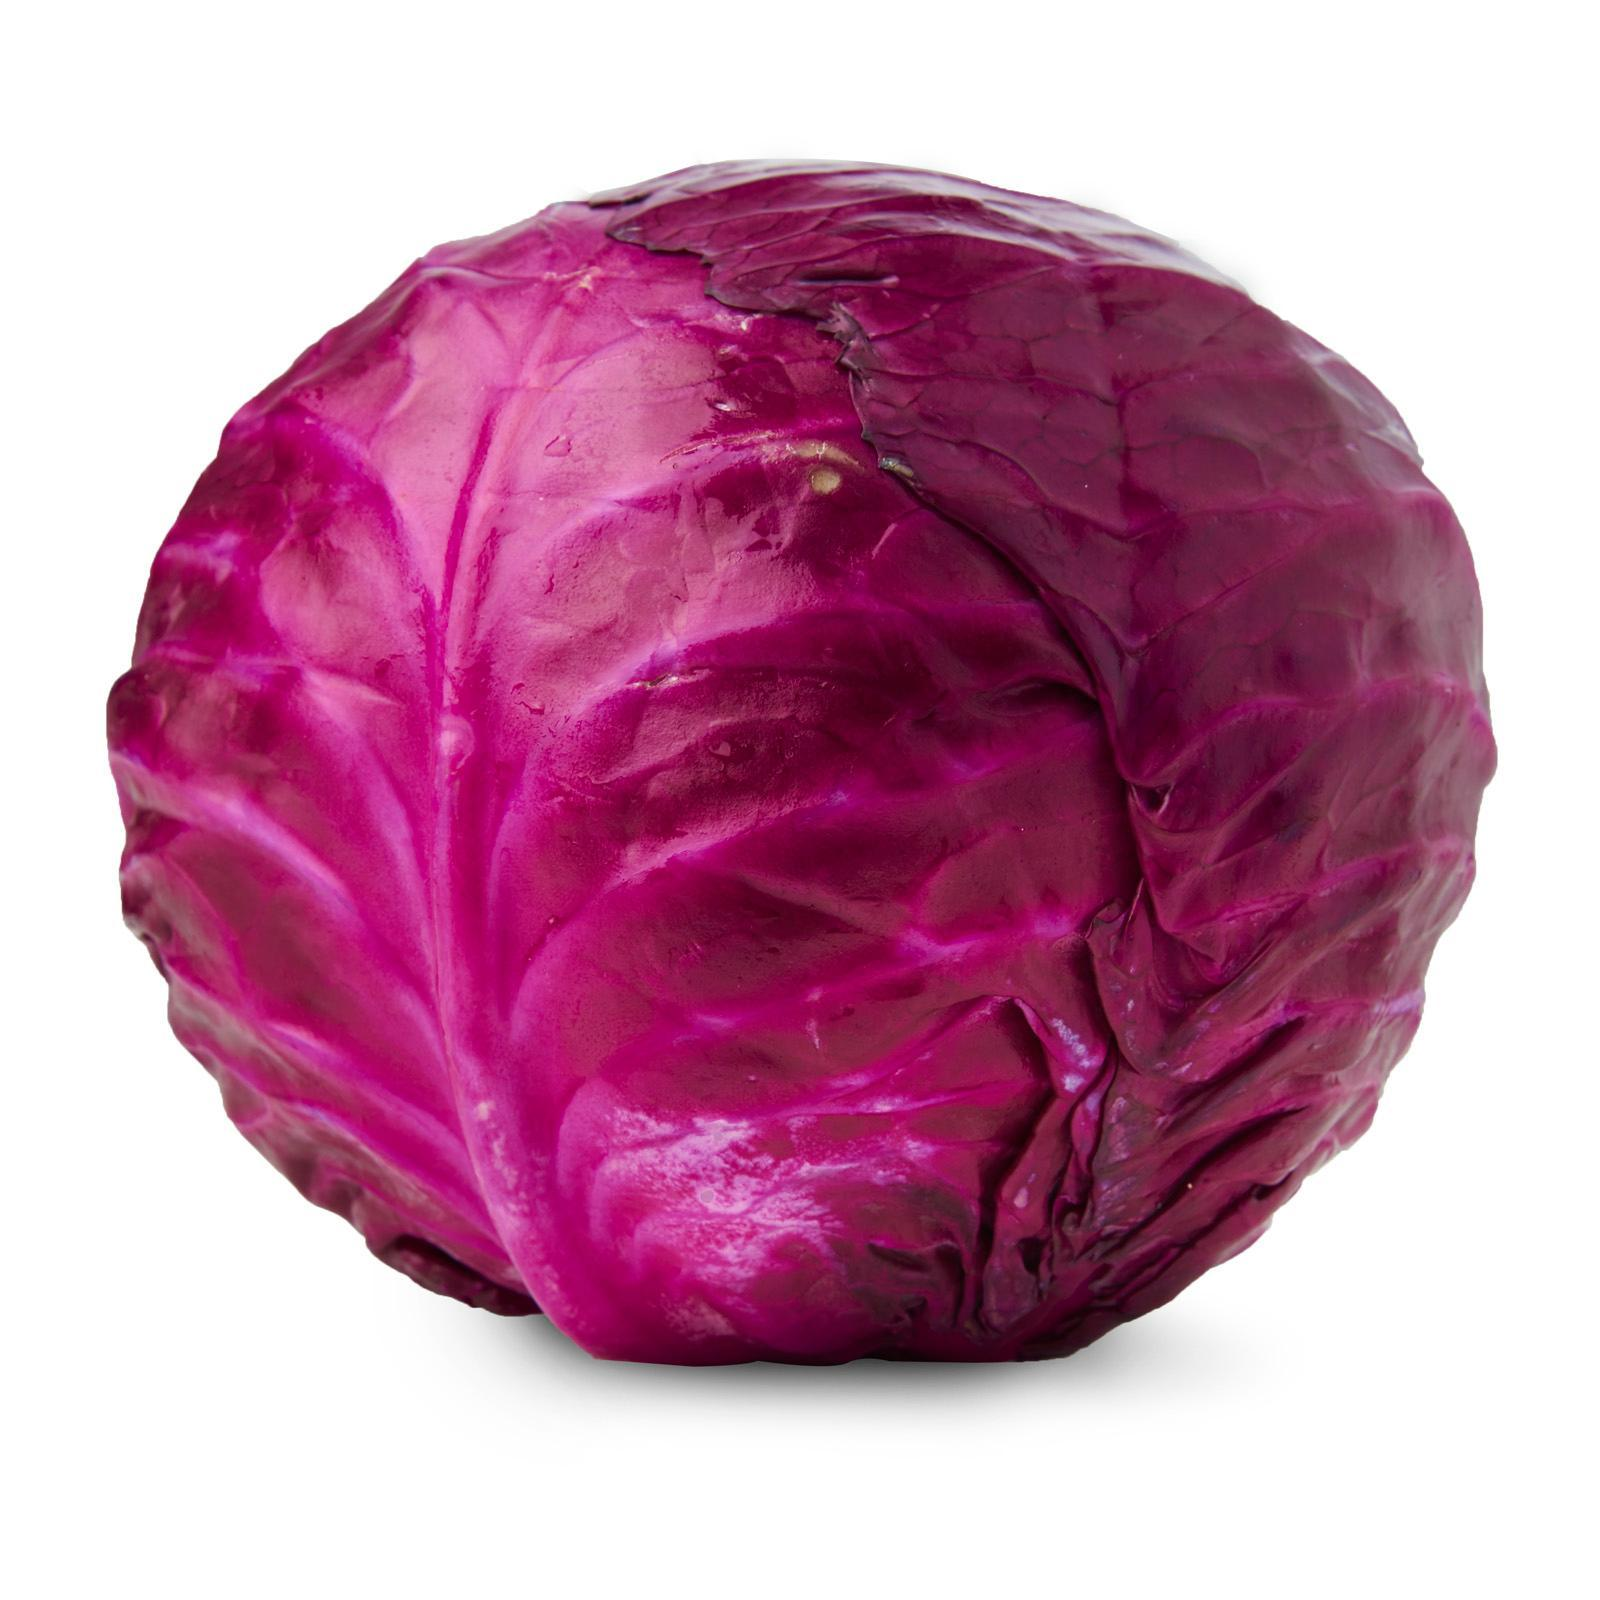 Givvo Red Cabbage By Redmart.